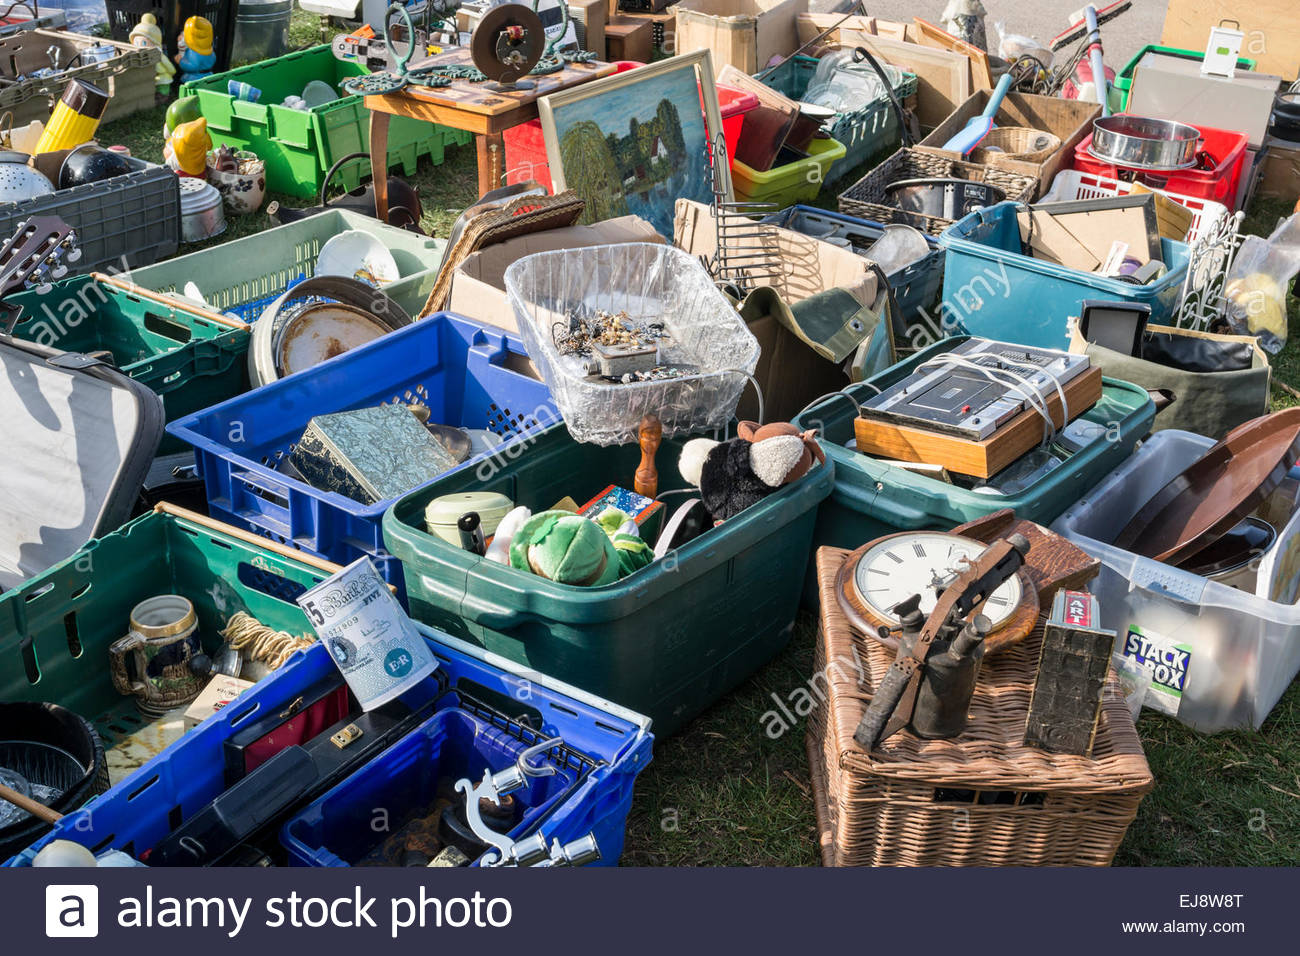 bric a brac items for sale on a market stall stock photo royalty free image 80100744 alamy. Black Bedroom Furniture Sets. Home Design Ideas